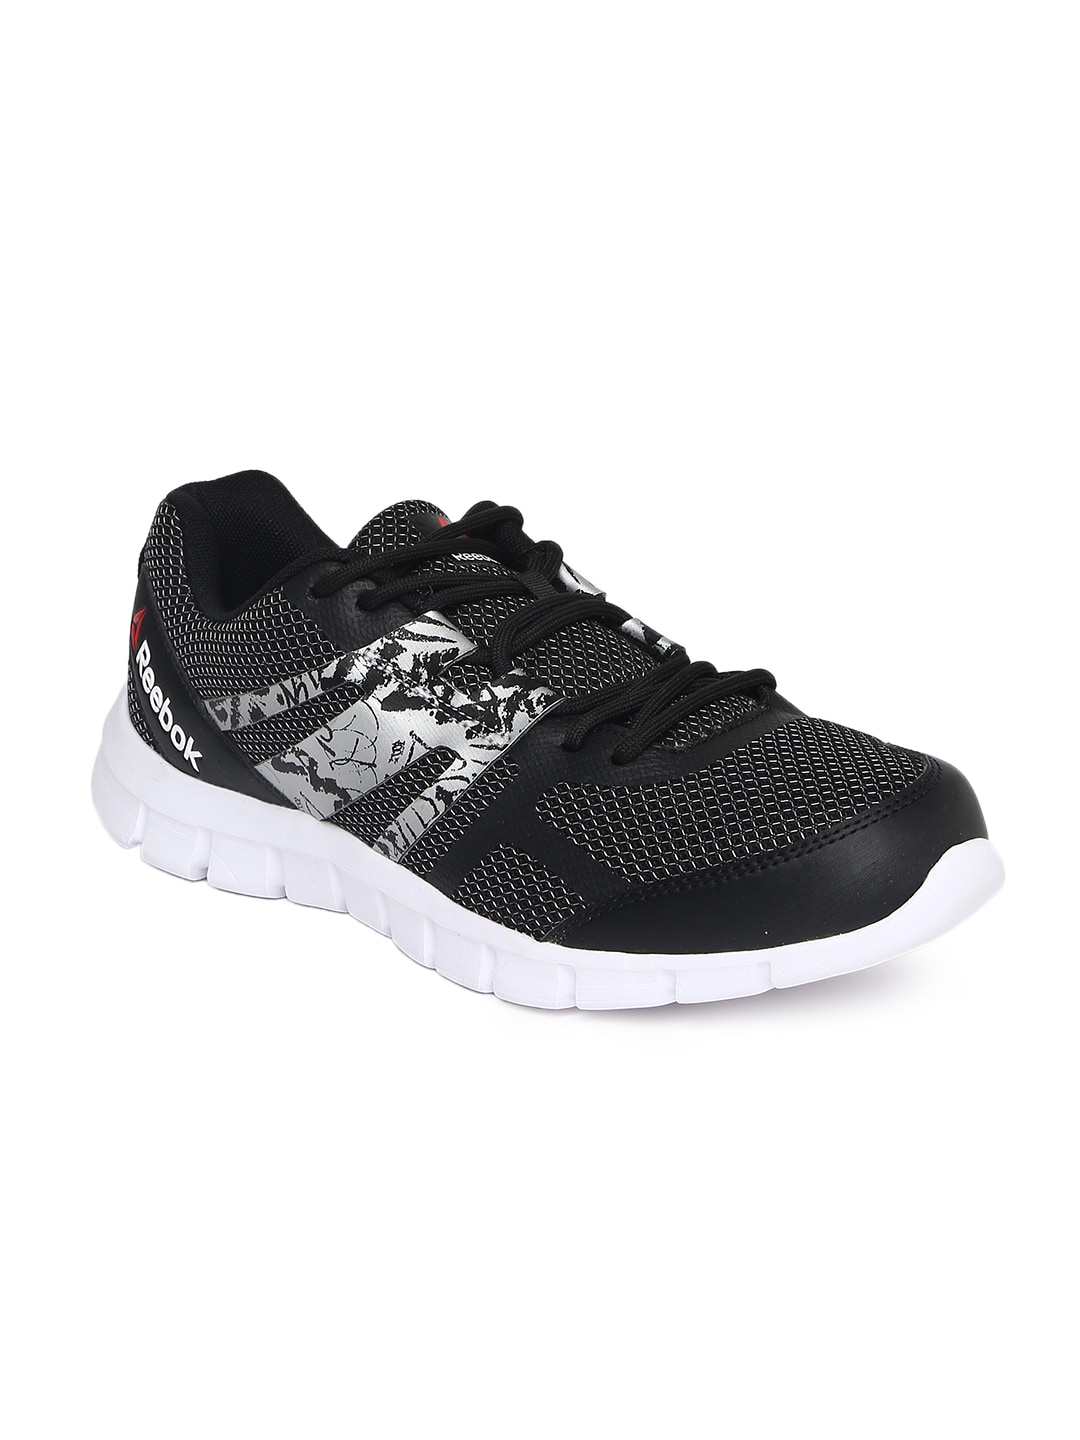 cd5336299e6 Reebok bd4076 Men Black Speed Xt Running Shoes - Best Price in ...